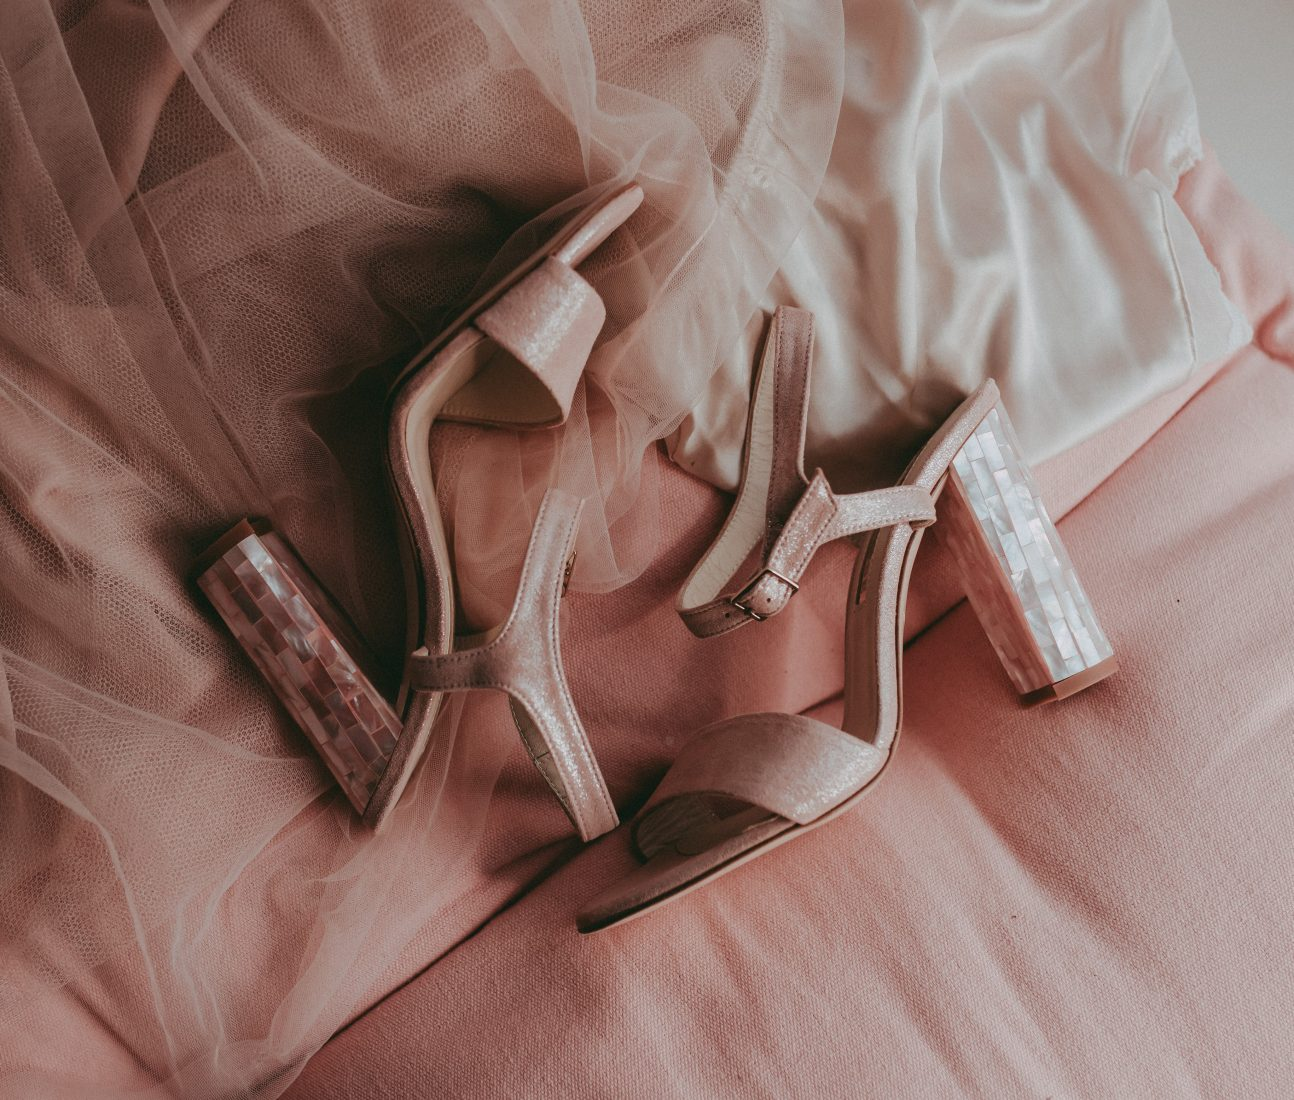 """<a href=""""https://freyarose.com/collections/wedding-shoes/products/martina-rosa"""" target=""""_blank"""" rel=""""noopener noreferrer"""">Martina Rosa Suede by Freya Rose</a> £445"""